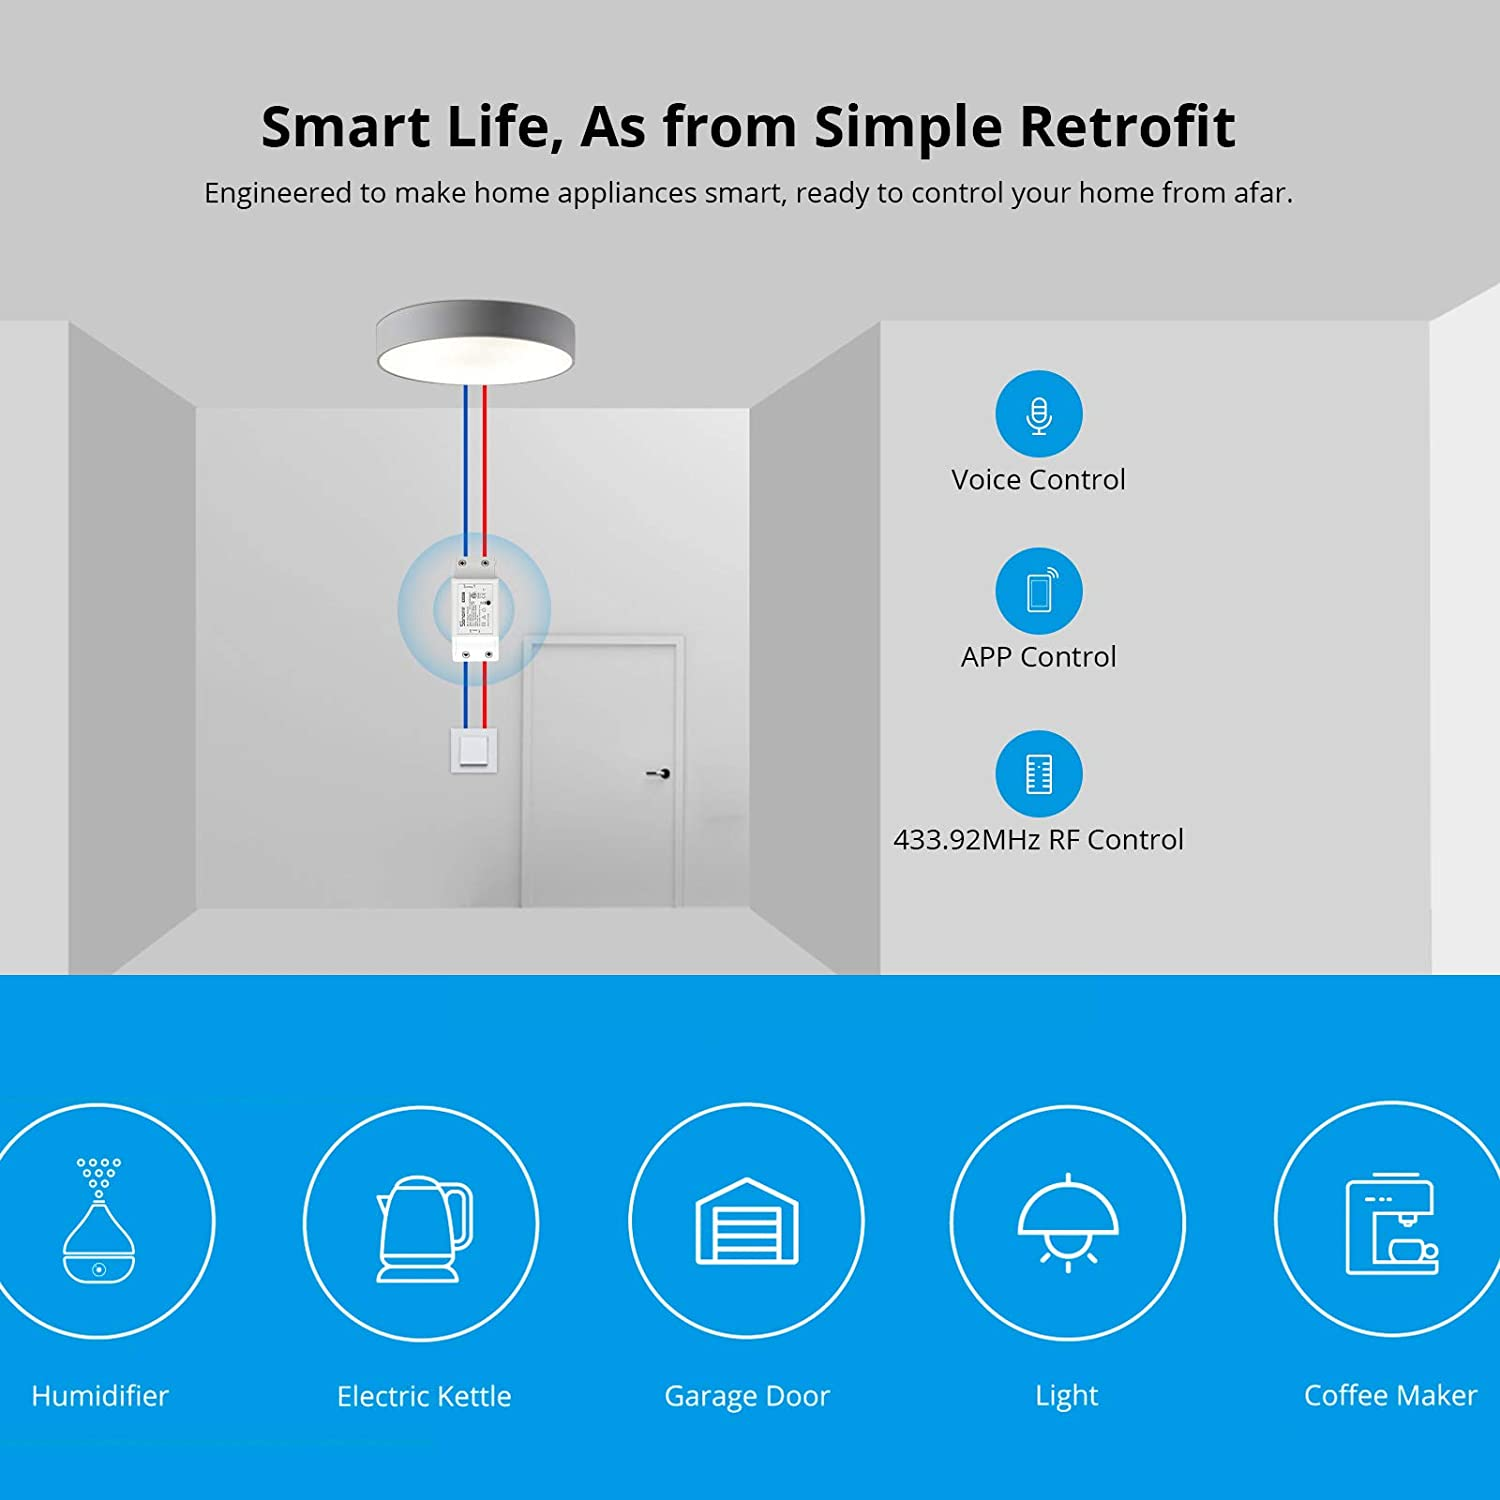 SONOFF Basic R2 10A Smart WiFi Wireless Light Switch, Universal DIY Module for Smart Home Automation Solution, Works with Amazon Alexa & Google Home Assistant, Works with IFTTT, No Hub Required